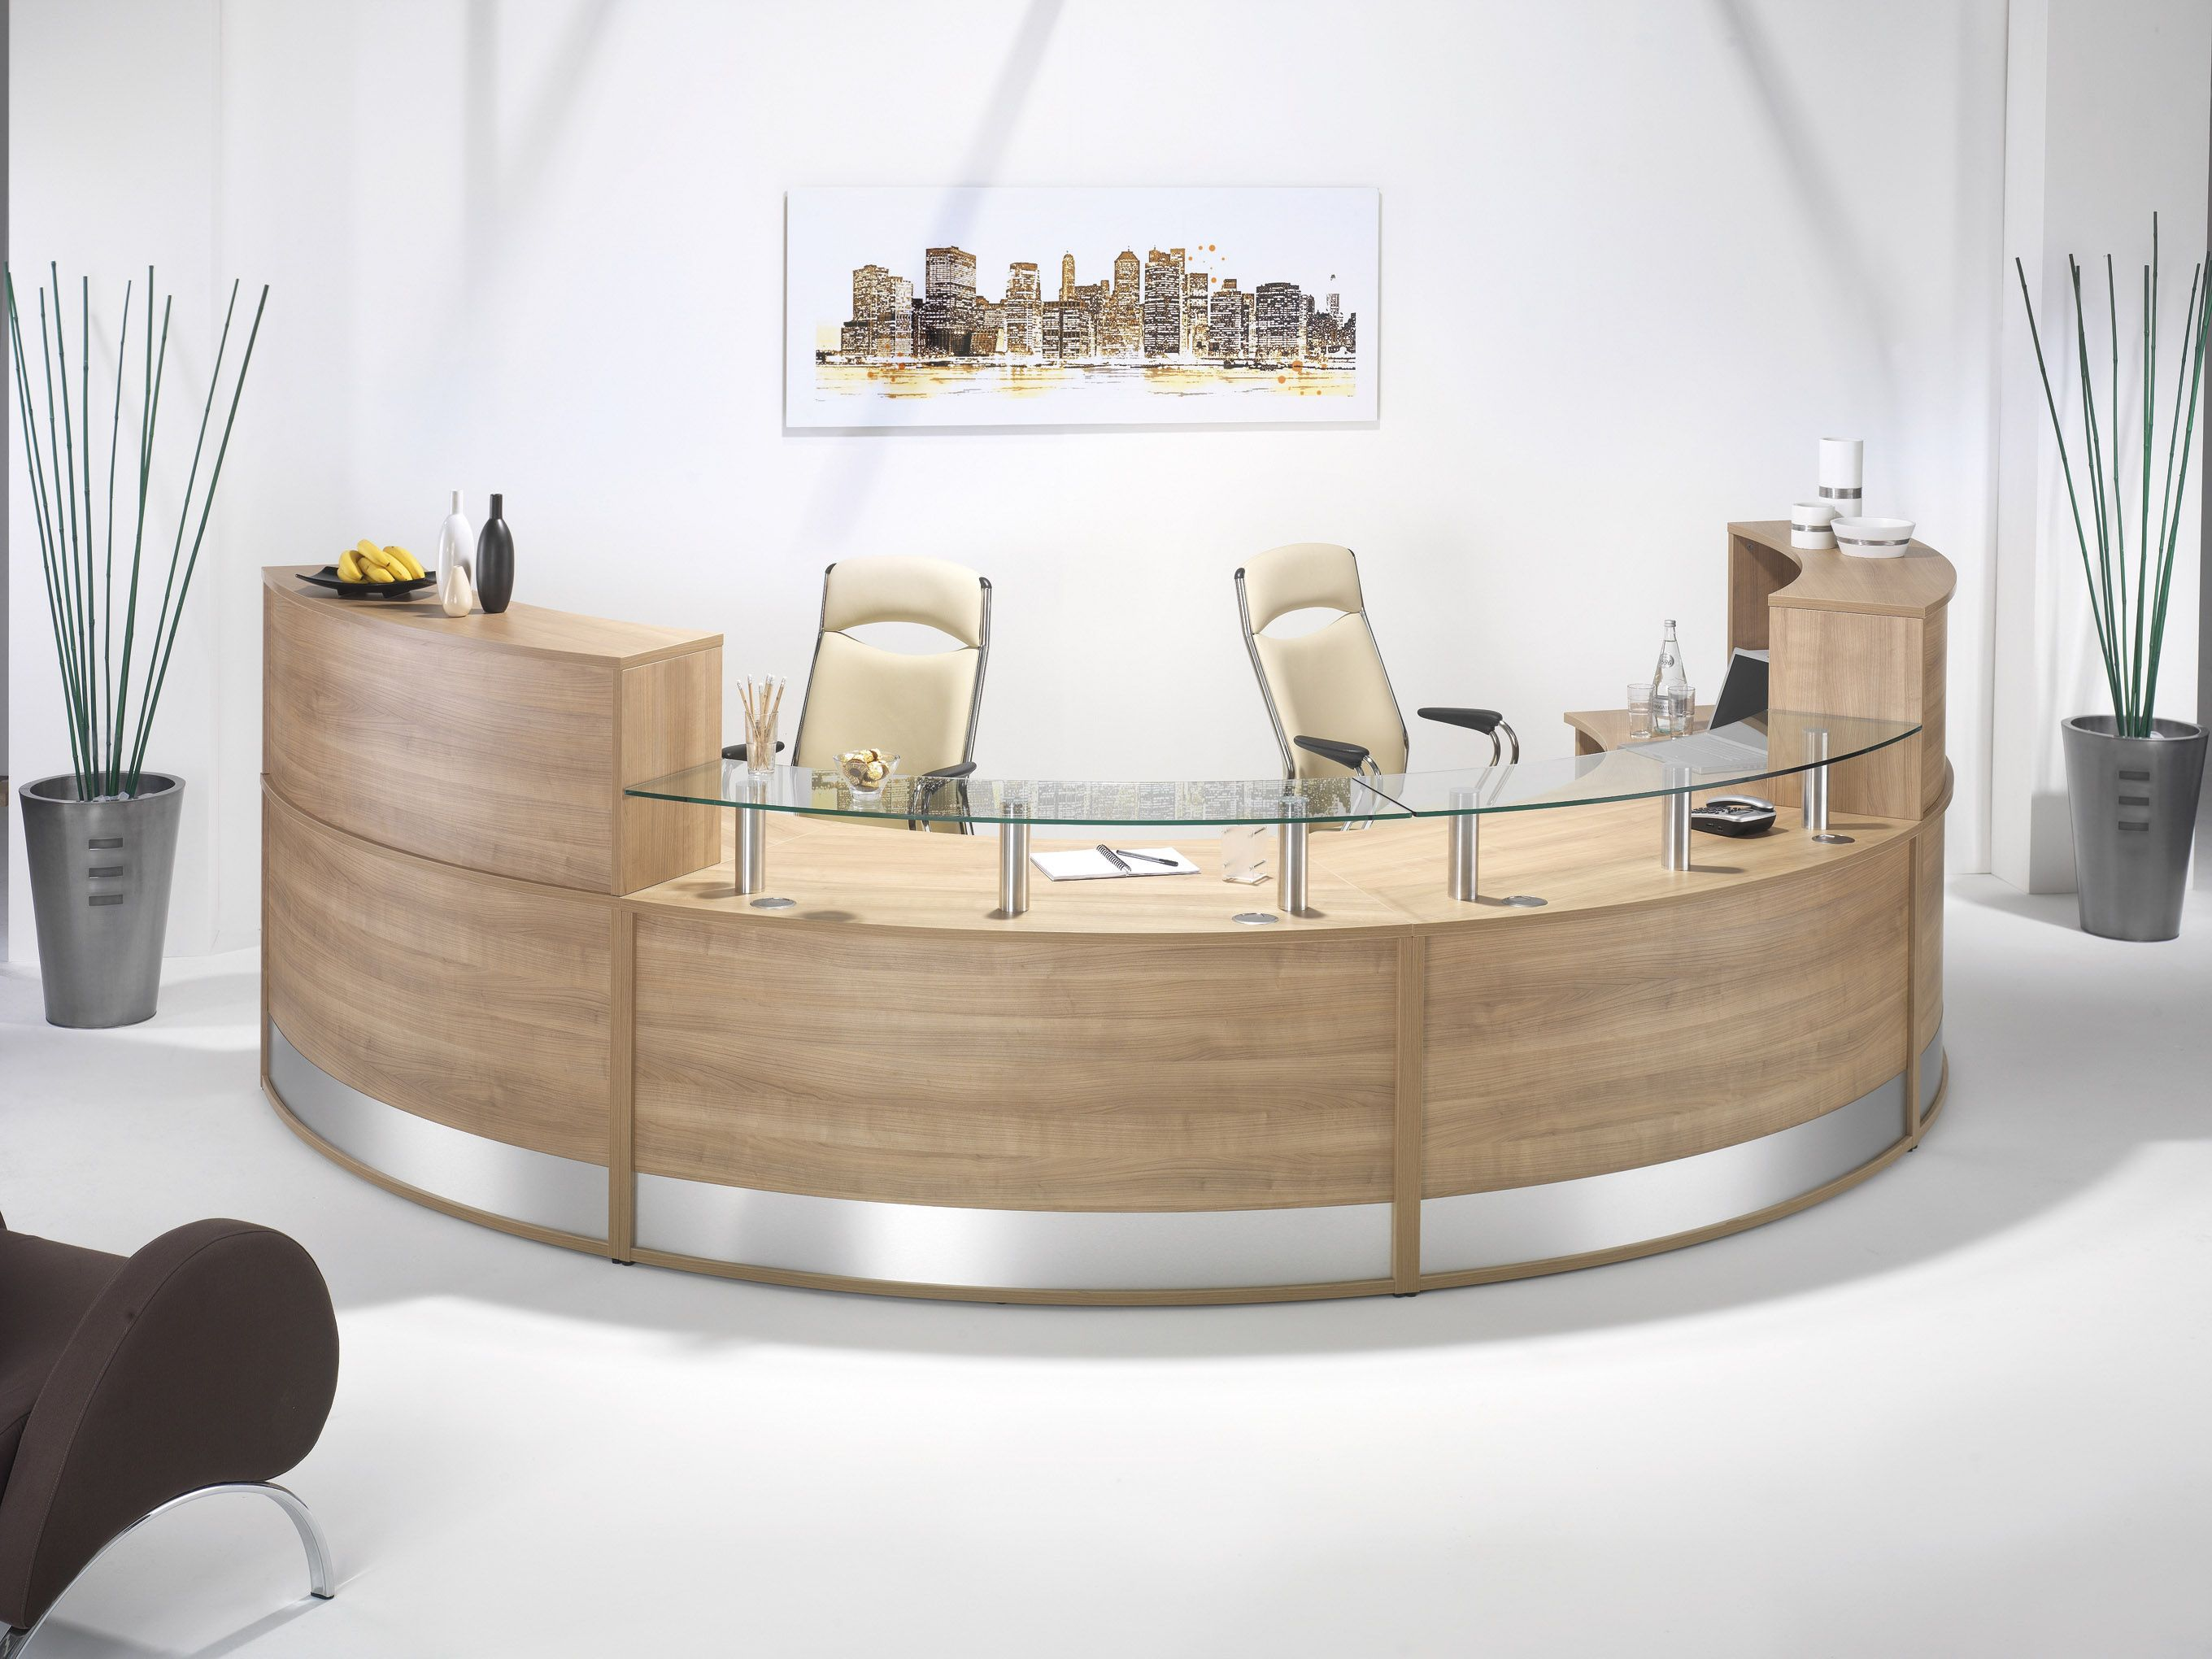 A Curved Reception Counter By Imperial Round Reception Desks